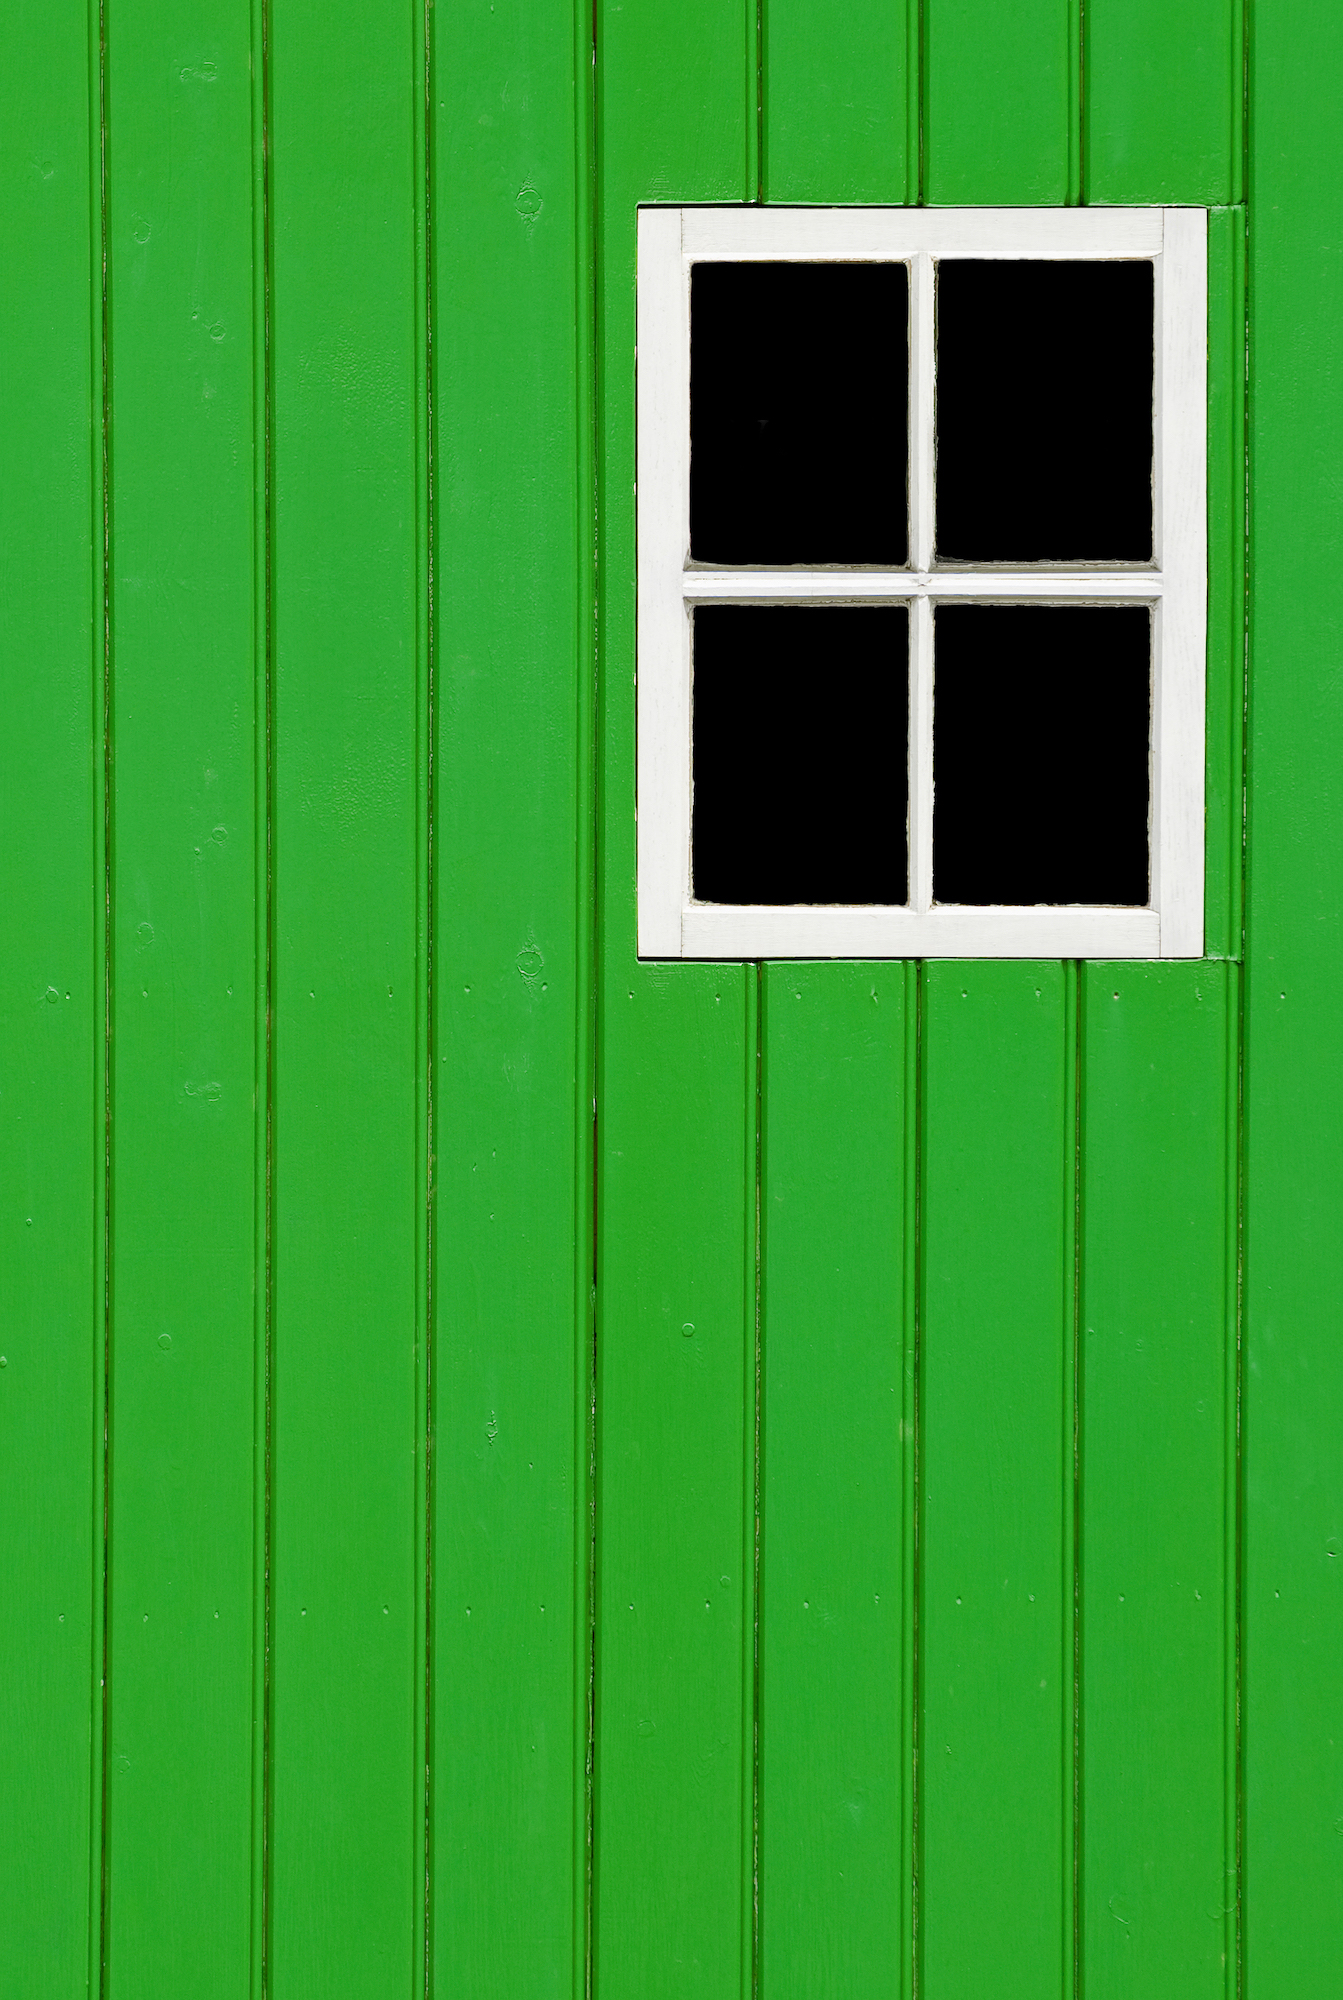 Building side view of a green wood panel frame with blank windows